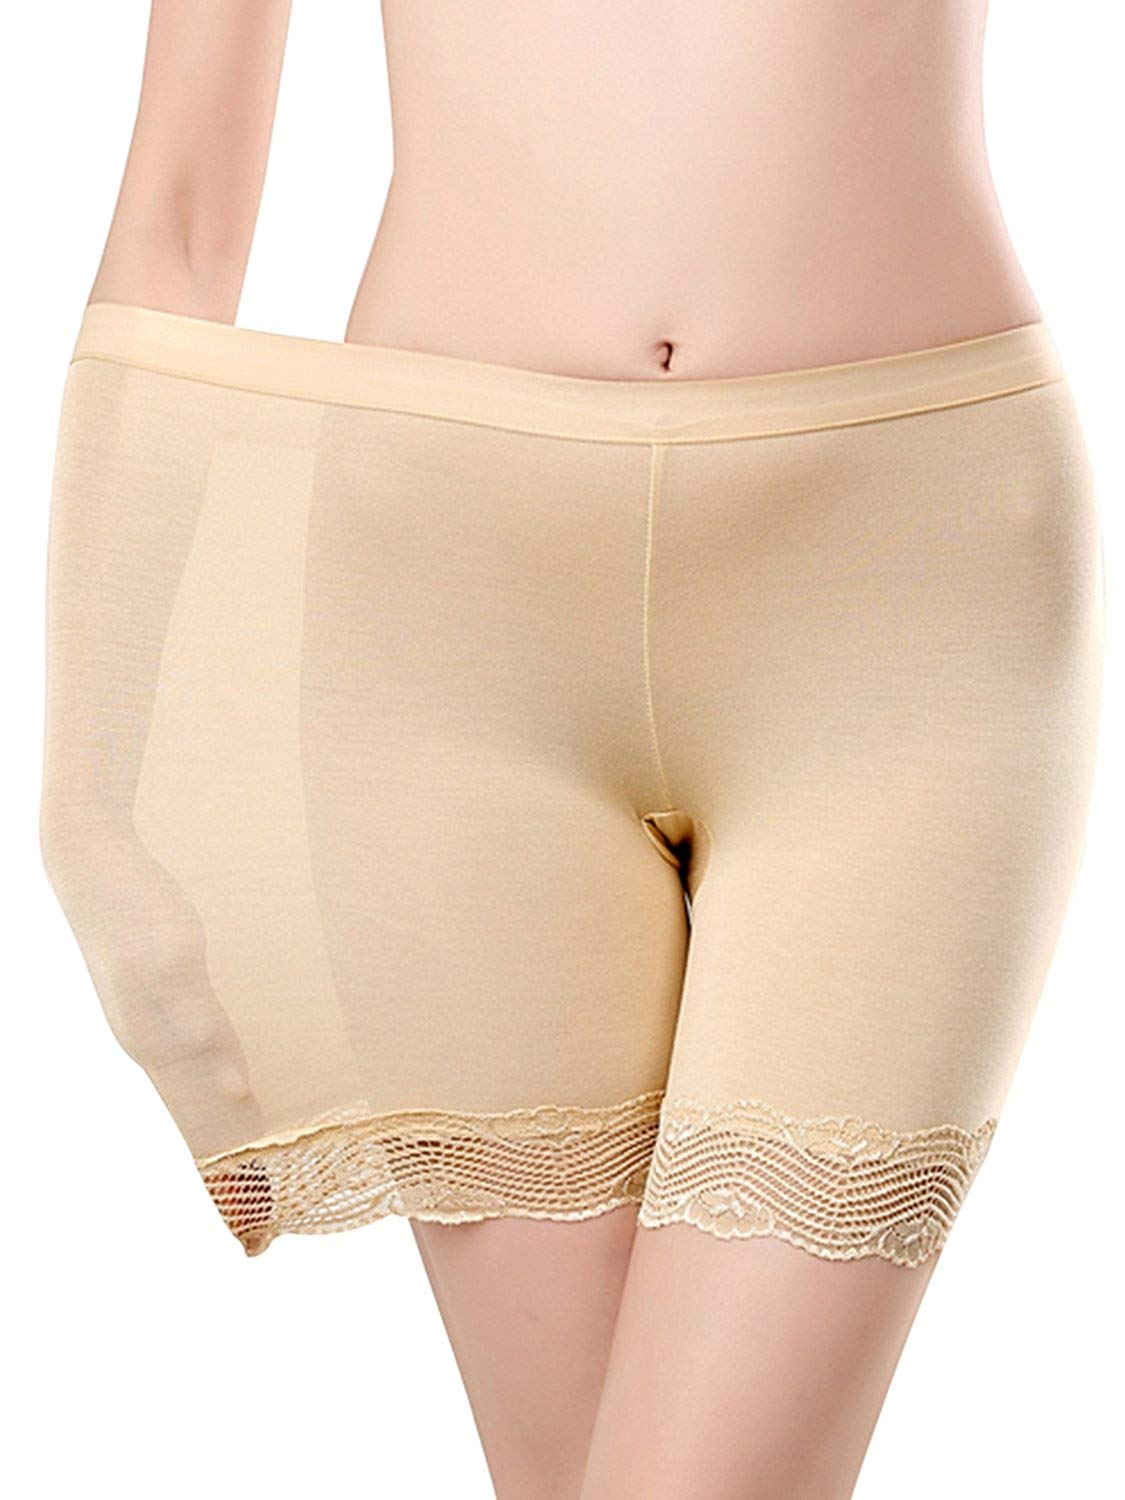 9bb087f227 Get Quotations · MisShow Women Comfortably Smooth Slip Invisibly Underskirt  Half Slip Short Panty